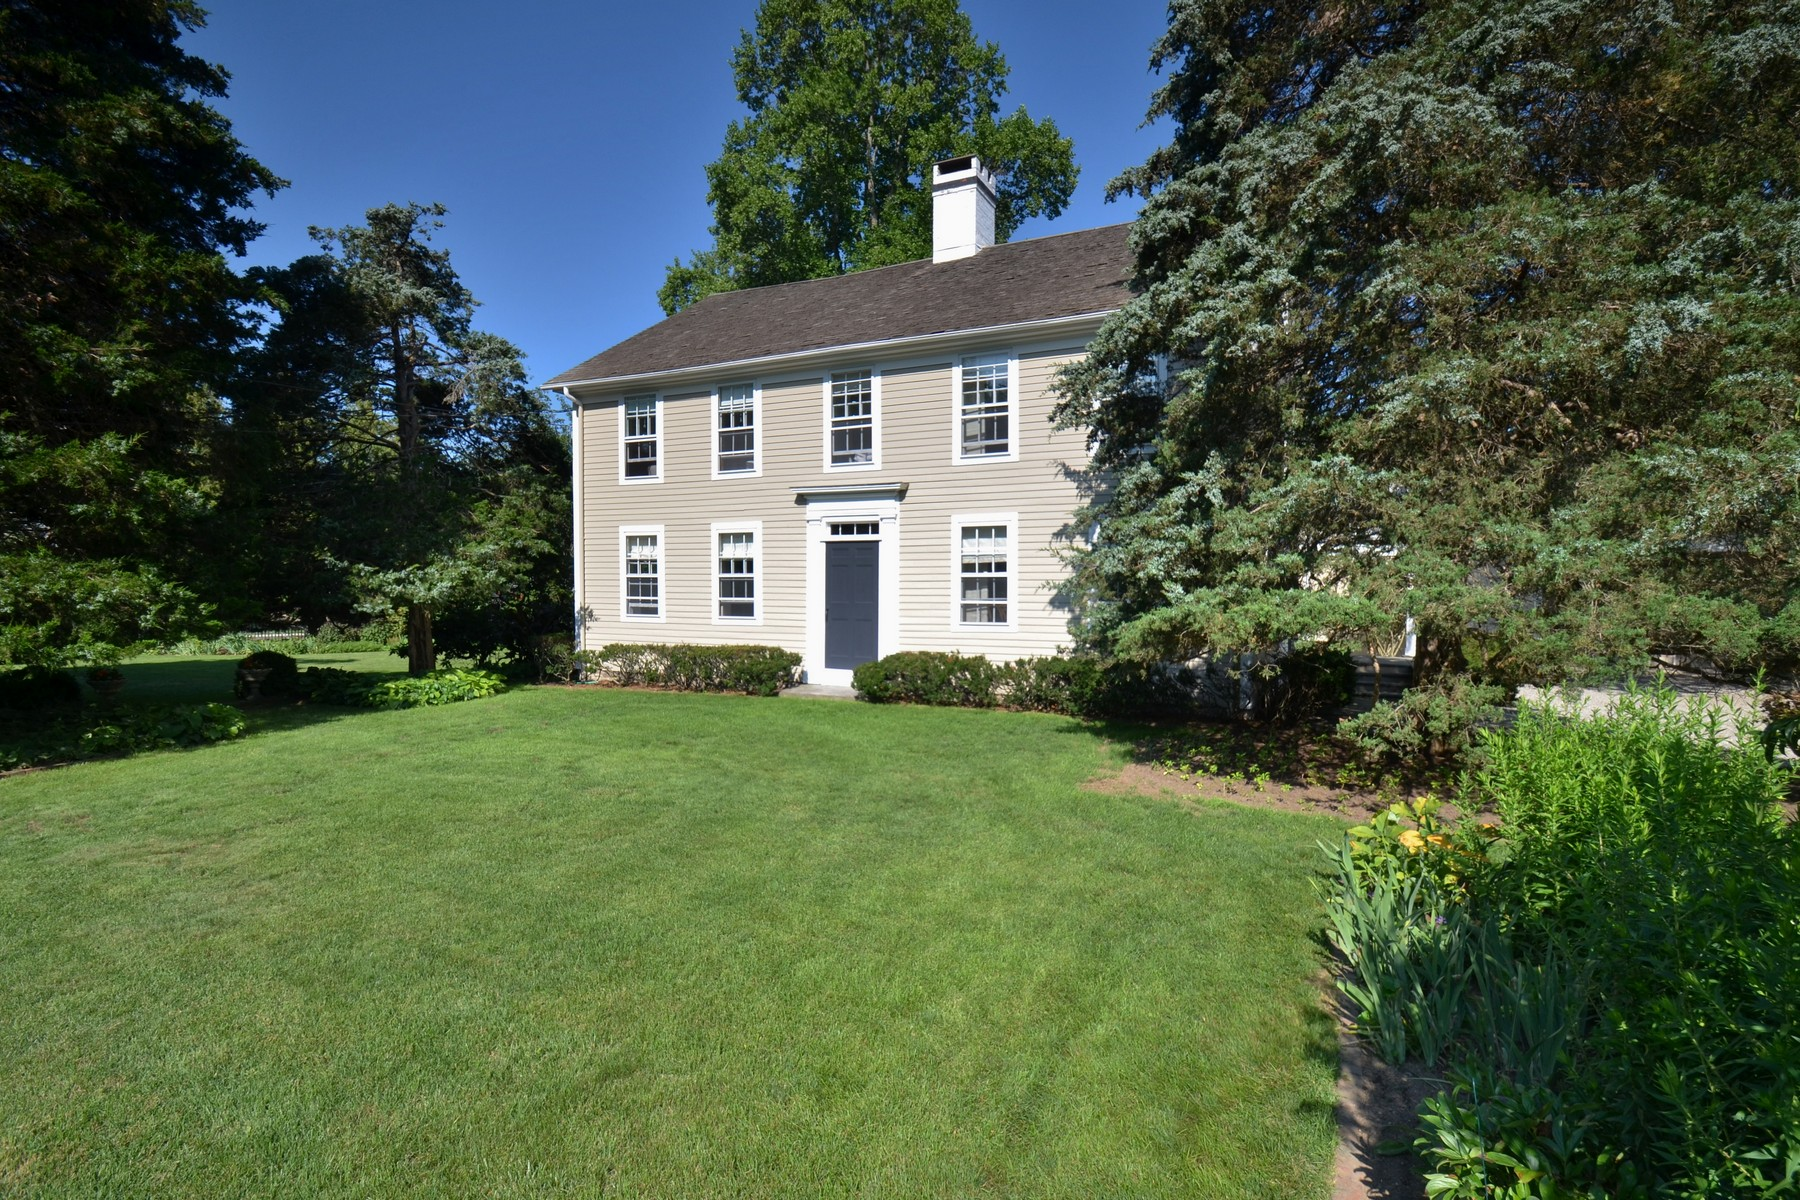 Single Family Home for Sale at In the Heart of The Village 6 Lyme St Old Lyme, Connecticut 06371 United States